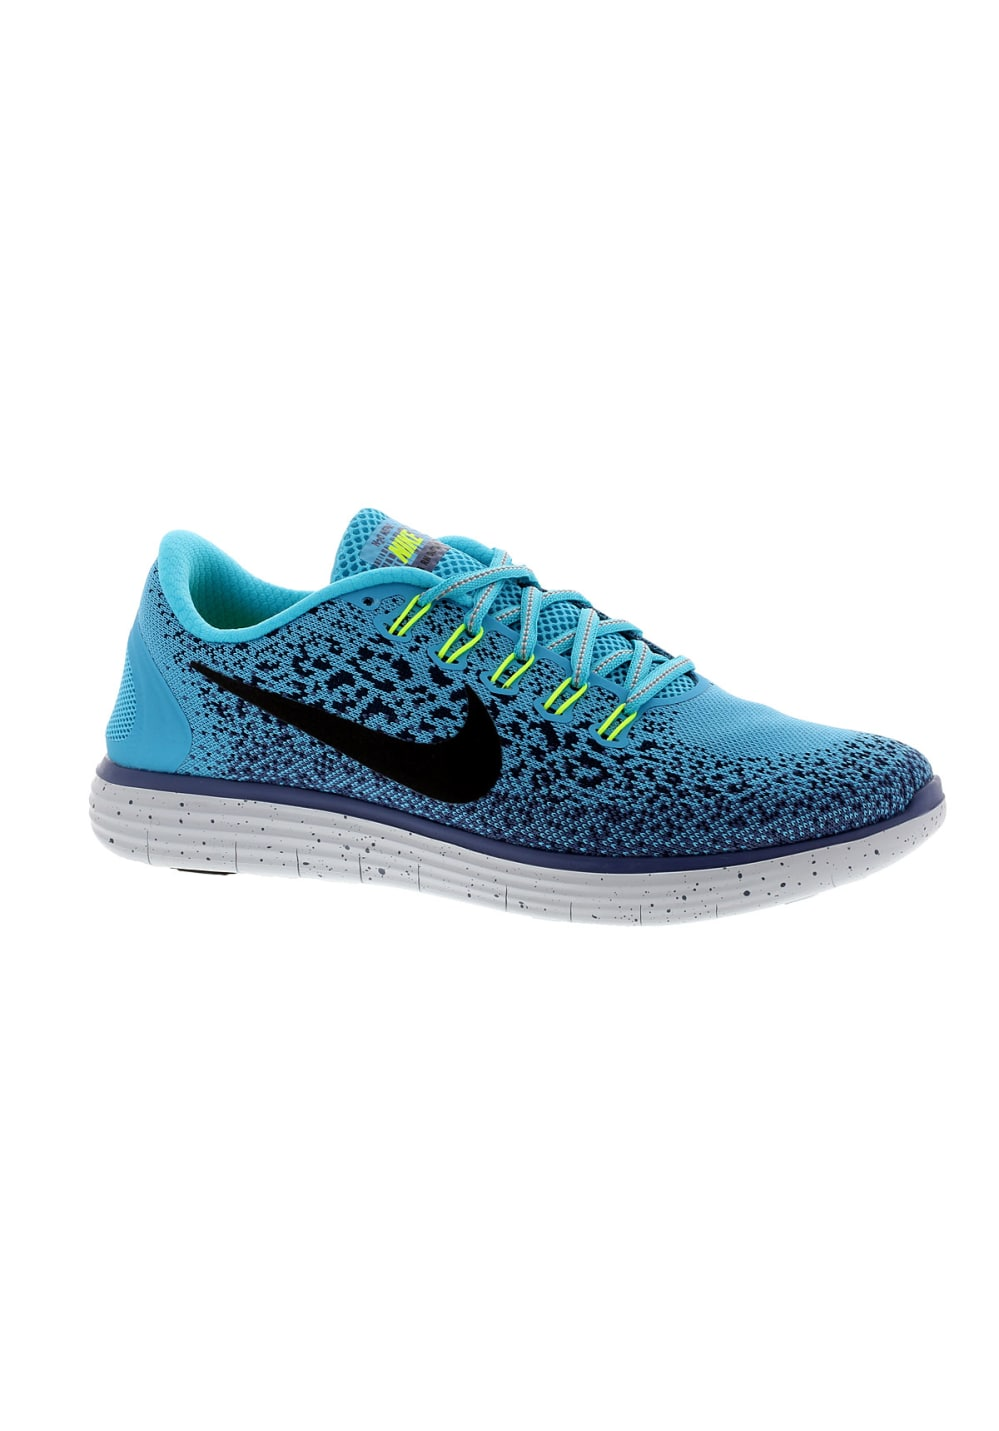 ef1043bae2998 Next. -45%. This product is currently out of stock. Nike. Free RN Distance  Shield - Running shoes for Women